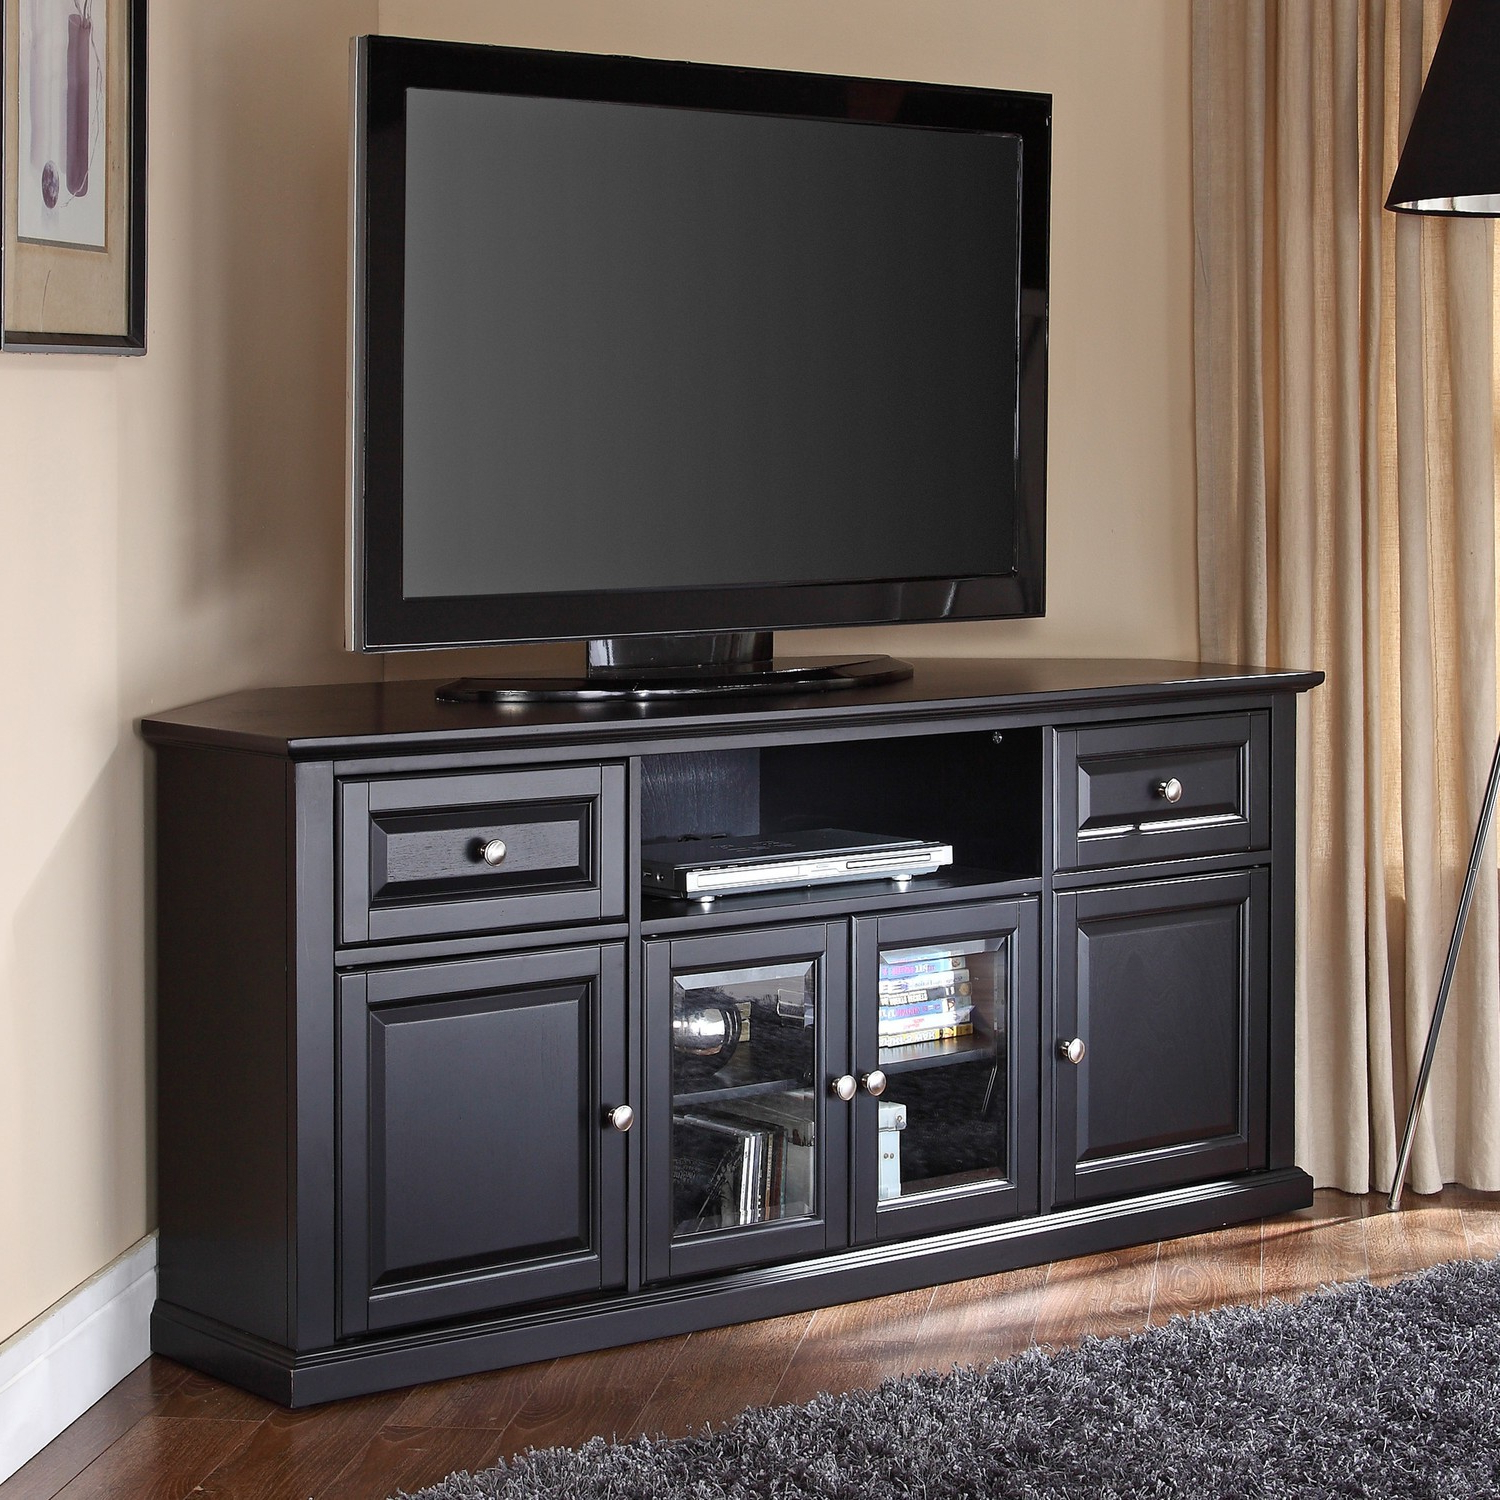 Recent Oak Tv Cabinets For Flat Screens Throughout Wood Tv Stand With Mount Flat Screen Tv Stand Tv Cabinet Design (Gallery 17 of 20)